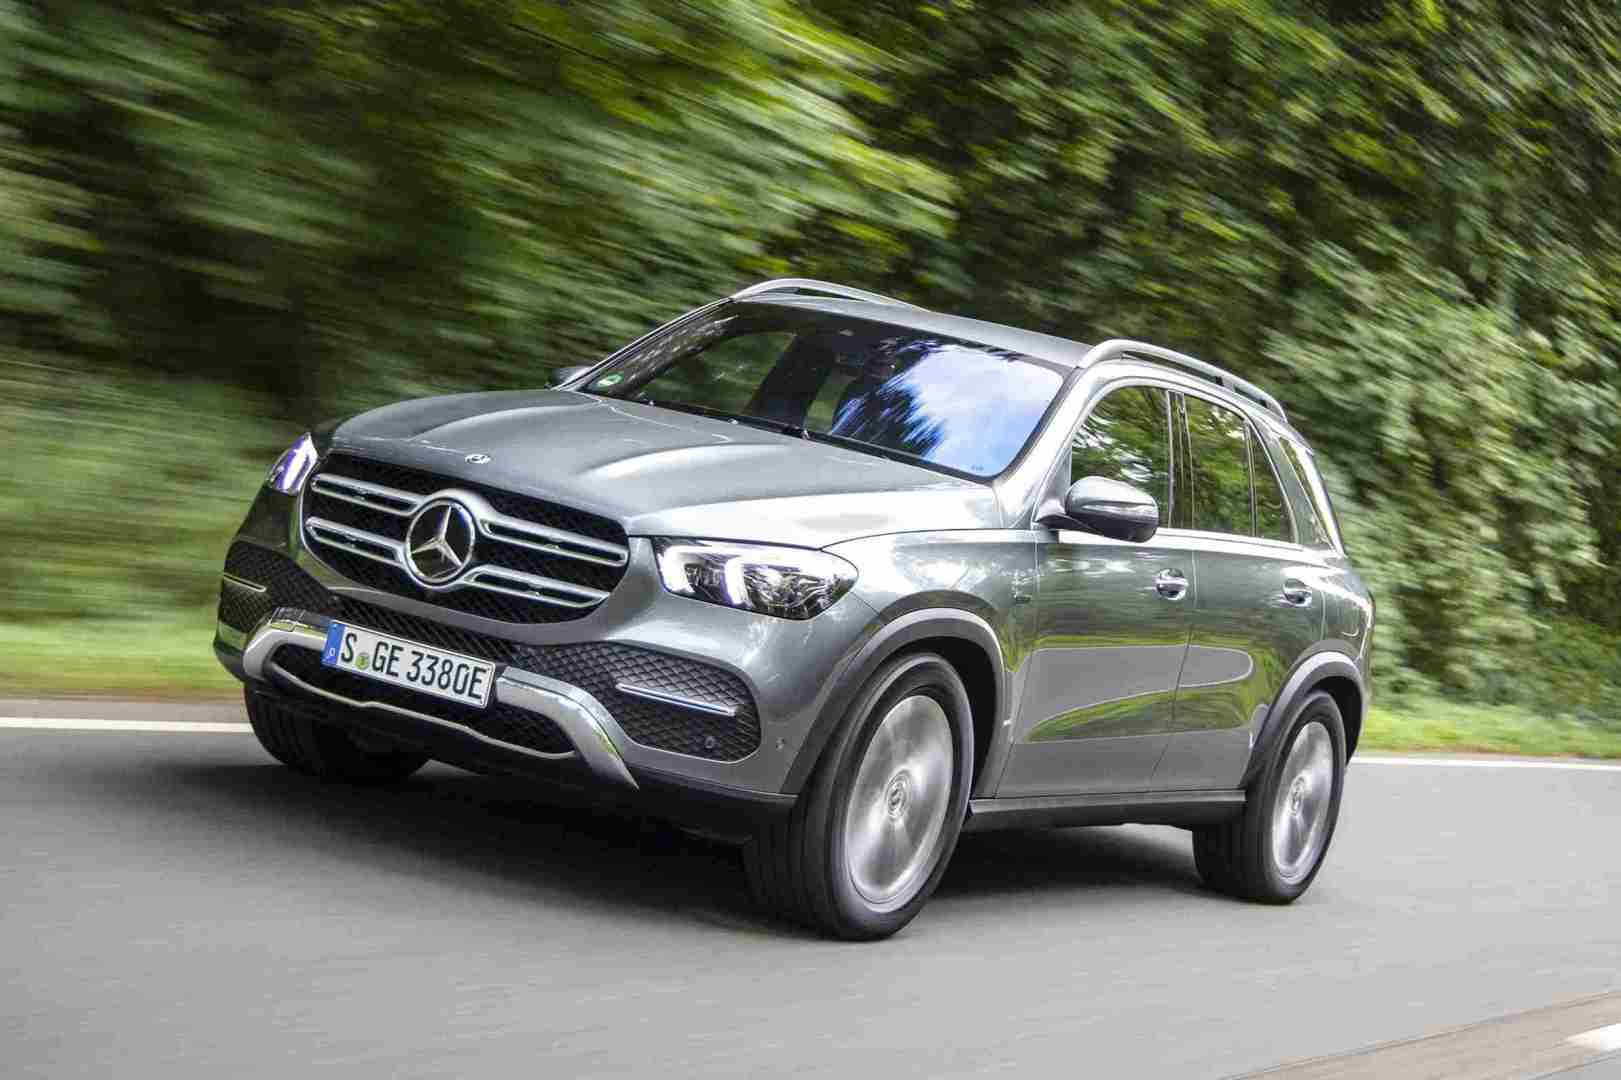 Mercedes-Benz GLE350de 4Matic